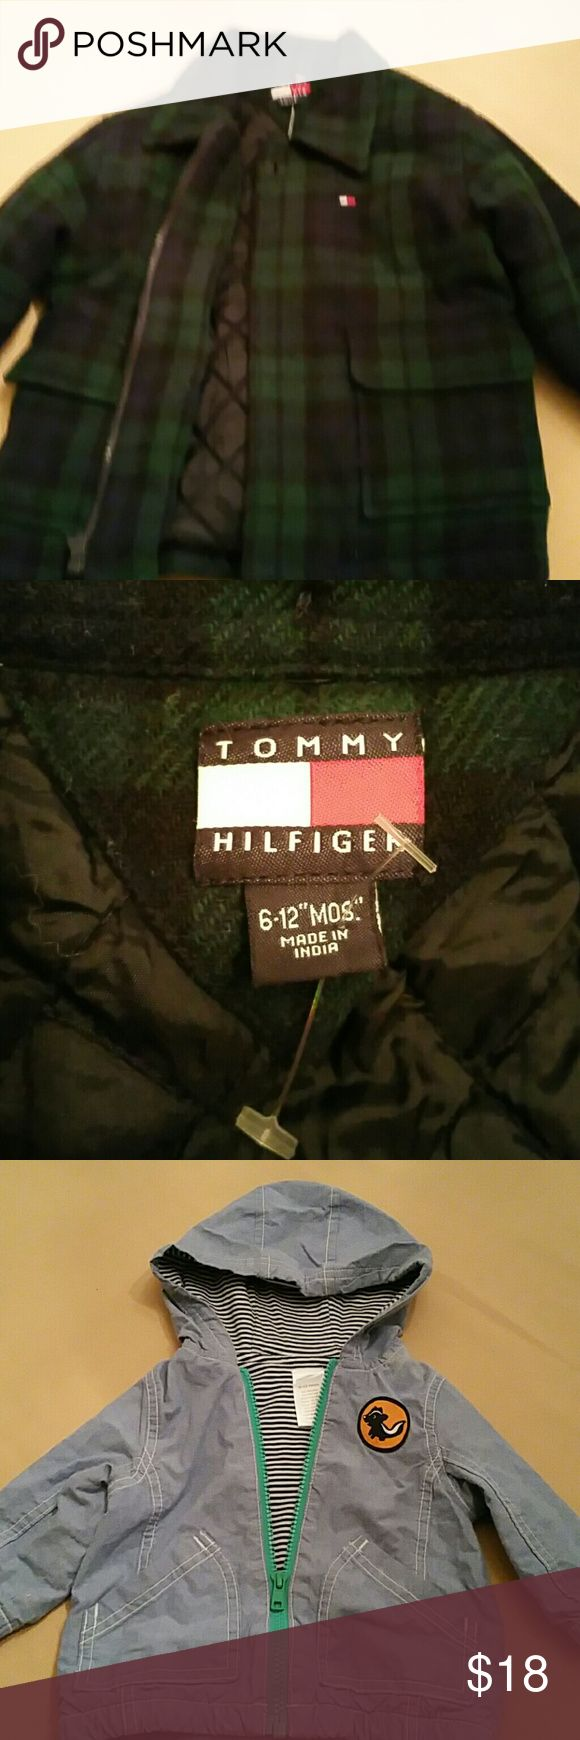 1 Tommy Hilfiger Coat 1 Gym bored Jacket and Shirt What you get. ..  1- Tommy Hilfiger Pea Coat   1- Gymboree Jacket  1 Gymboree Hooded Long Sleeve Shirt Tommy Hilfiger  Jackets & Coats Pea Coats